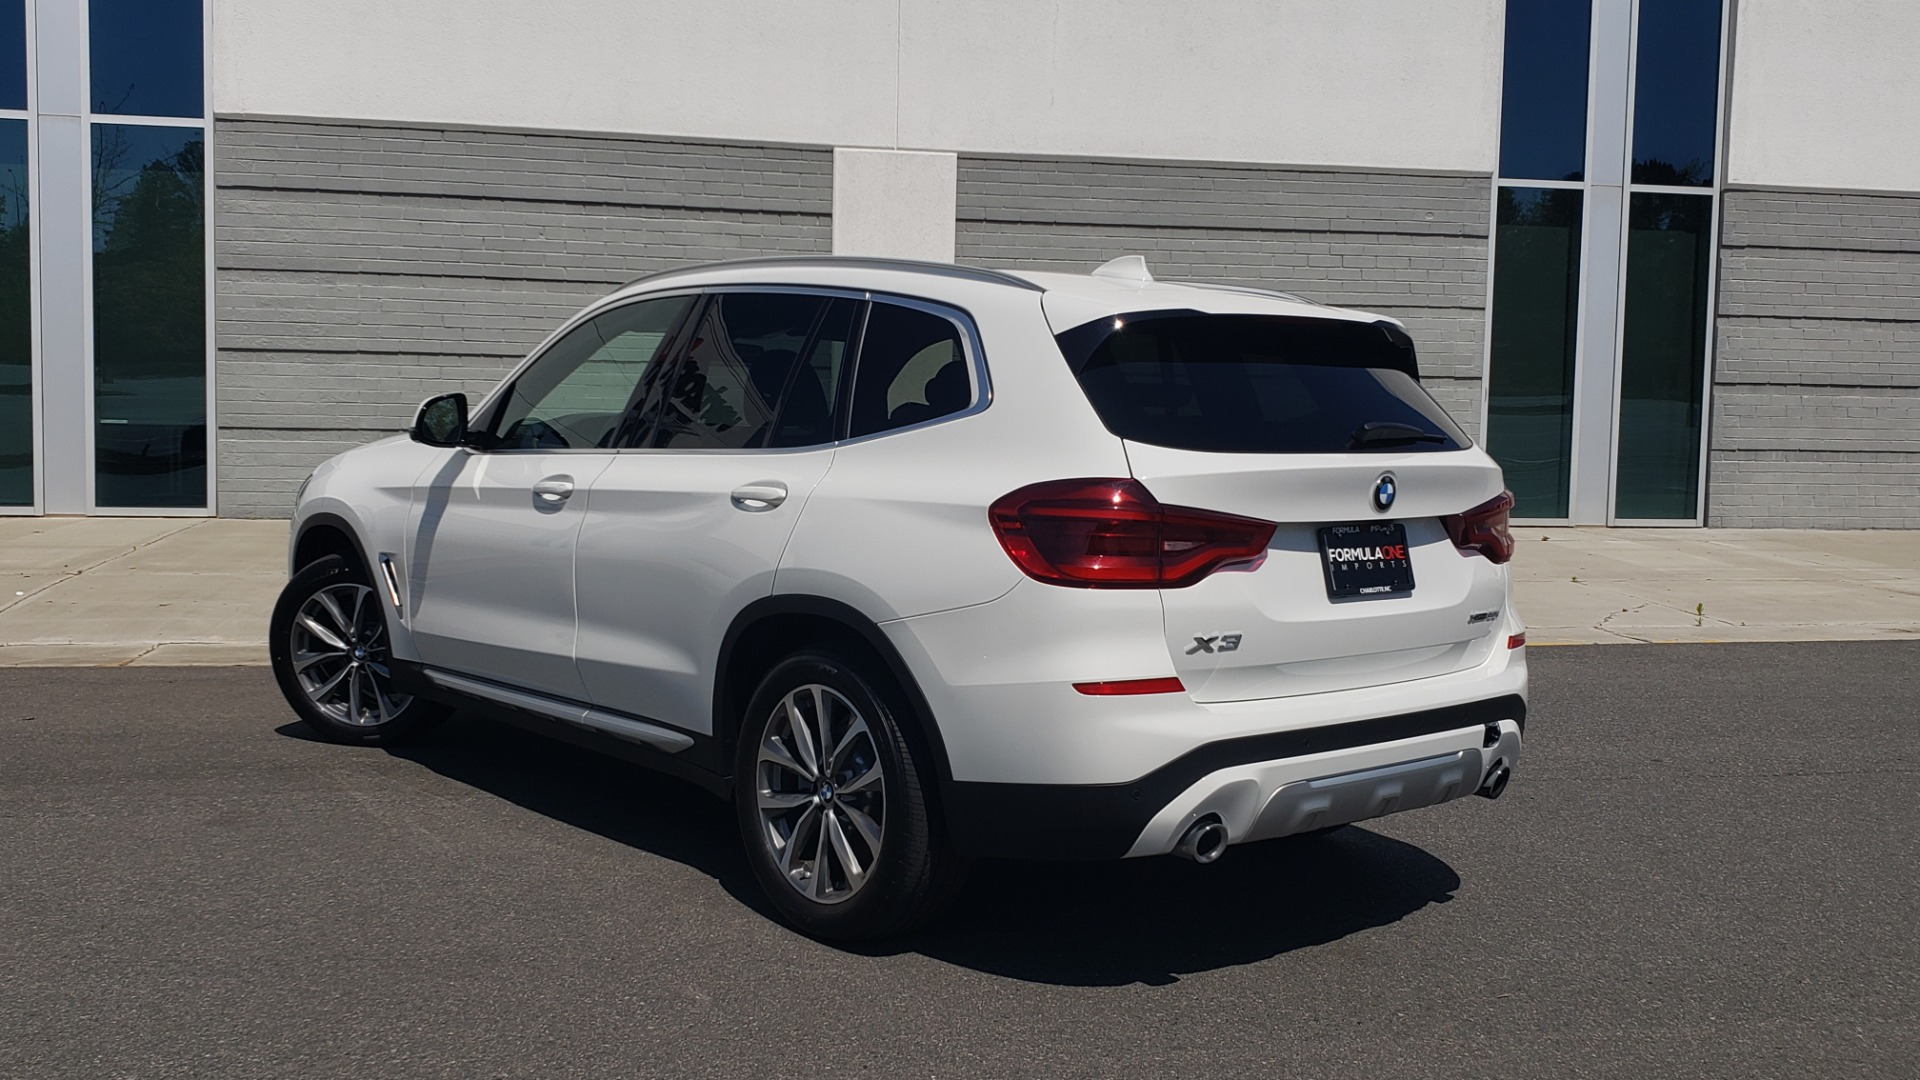 Used 2018 BMW X3 XDRIVE30I / CONV PKG / PANO-ROOF / HTD STS / REARVIEW for sale $33,995 at Formula Imports in Charlotte NC 28227 2